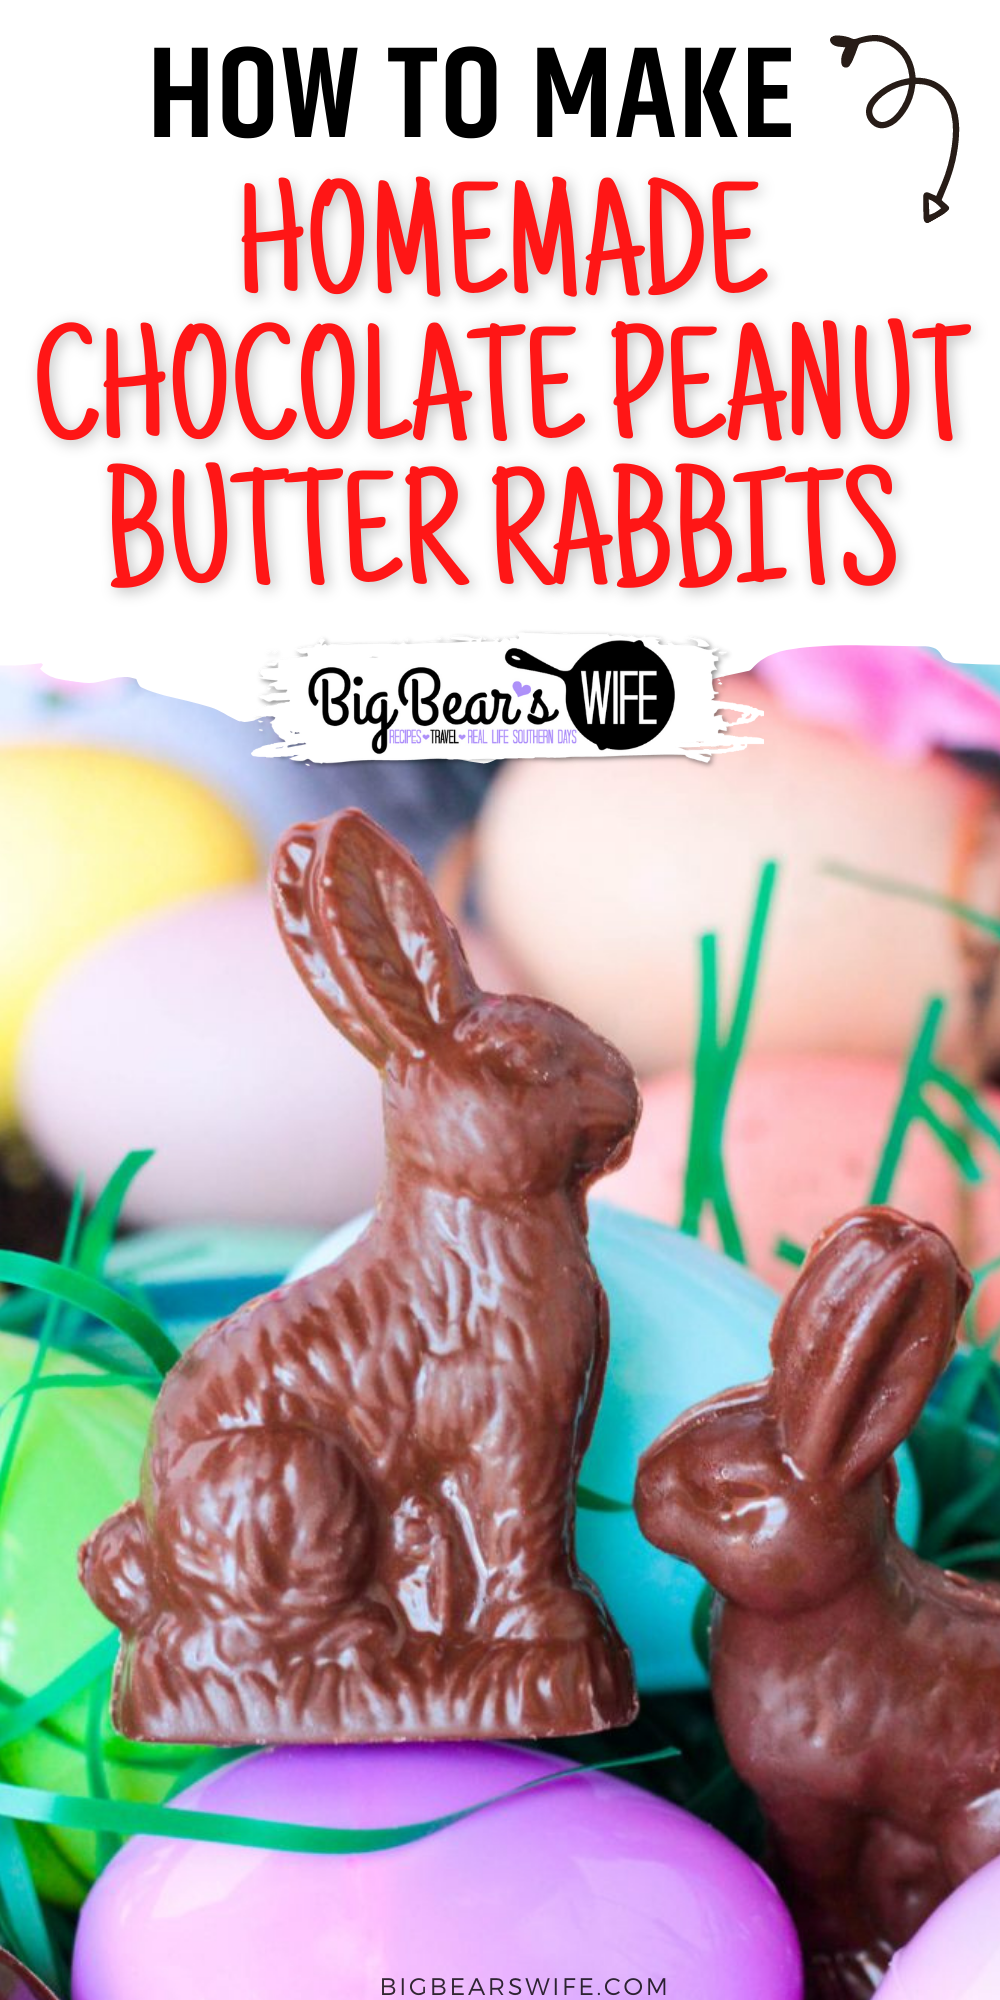 Little Homemade Chocolate Peanut Butter Rabbits are just perfect for Easter Baskets! Make them like this with a peanut butter filling, leave them hollow or make them into solid chocolate bunnies! 